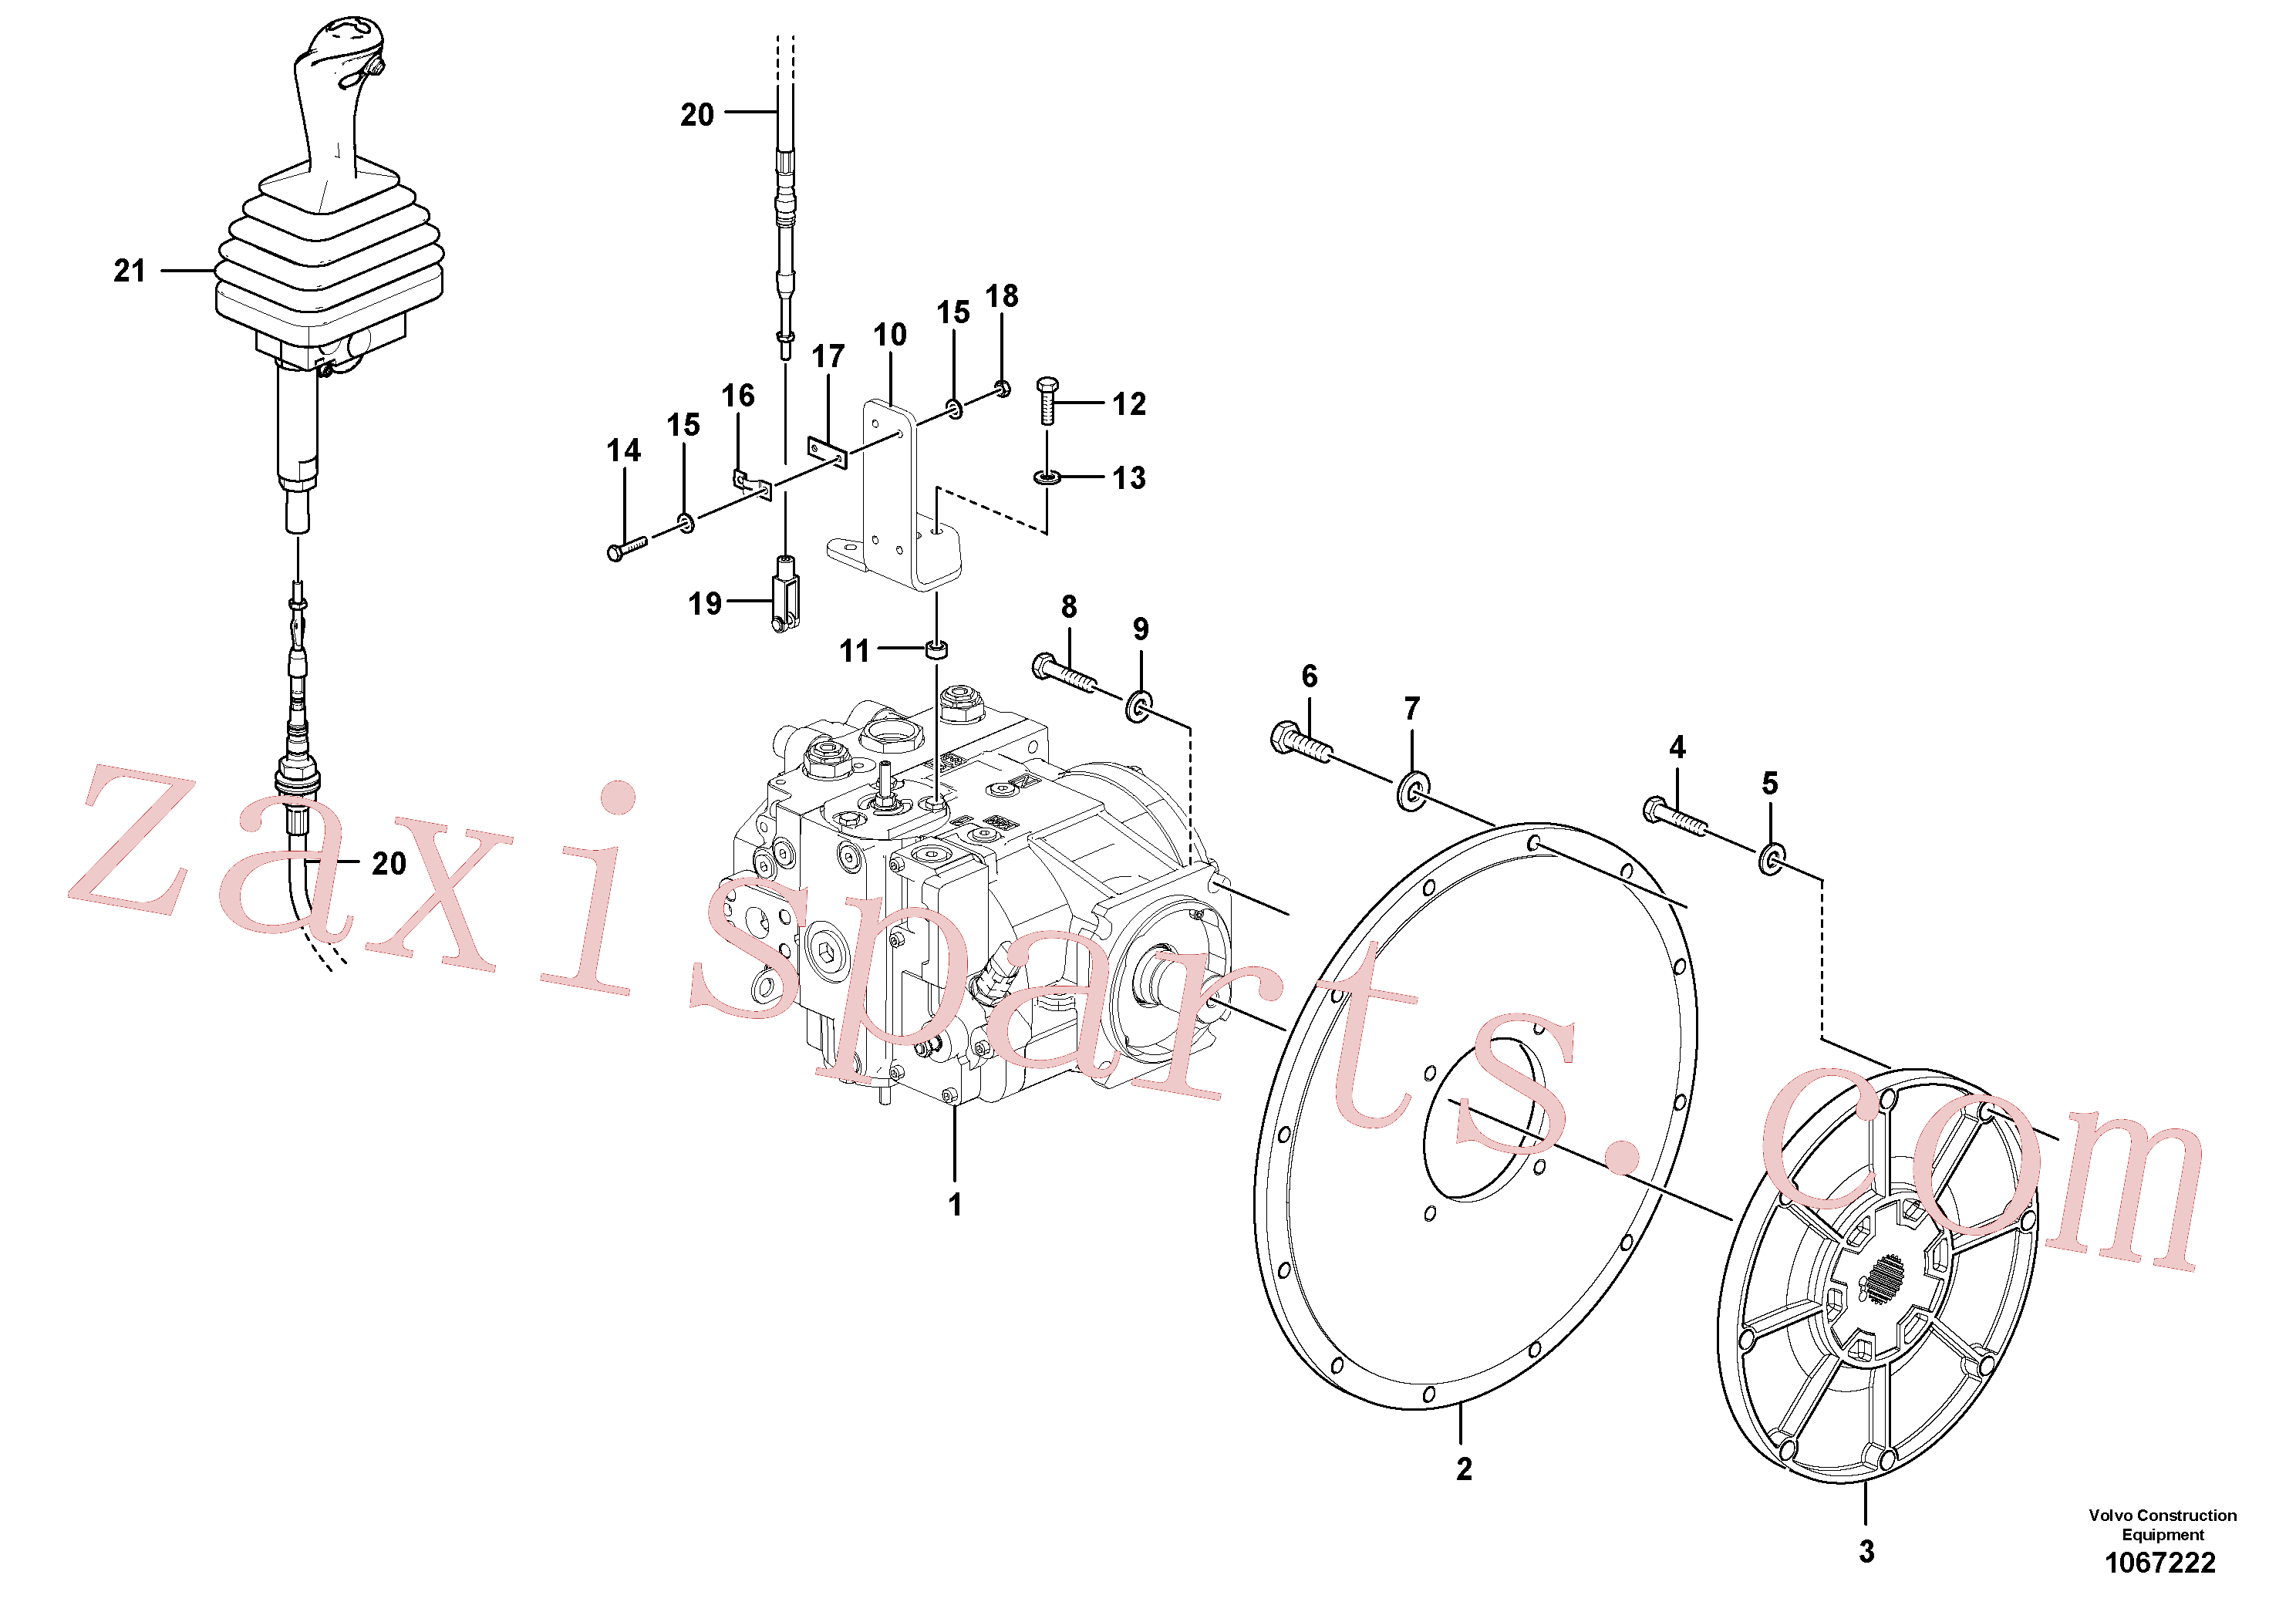 RM59580571 for Volvo Propulsion Pump Assembly(1067222 assembly)